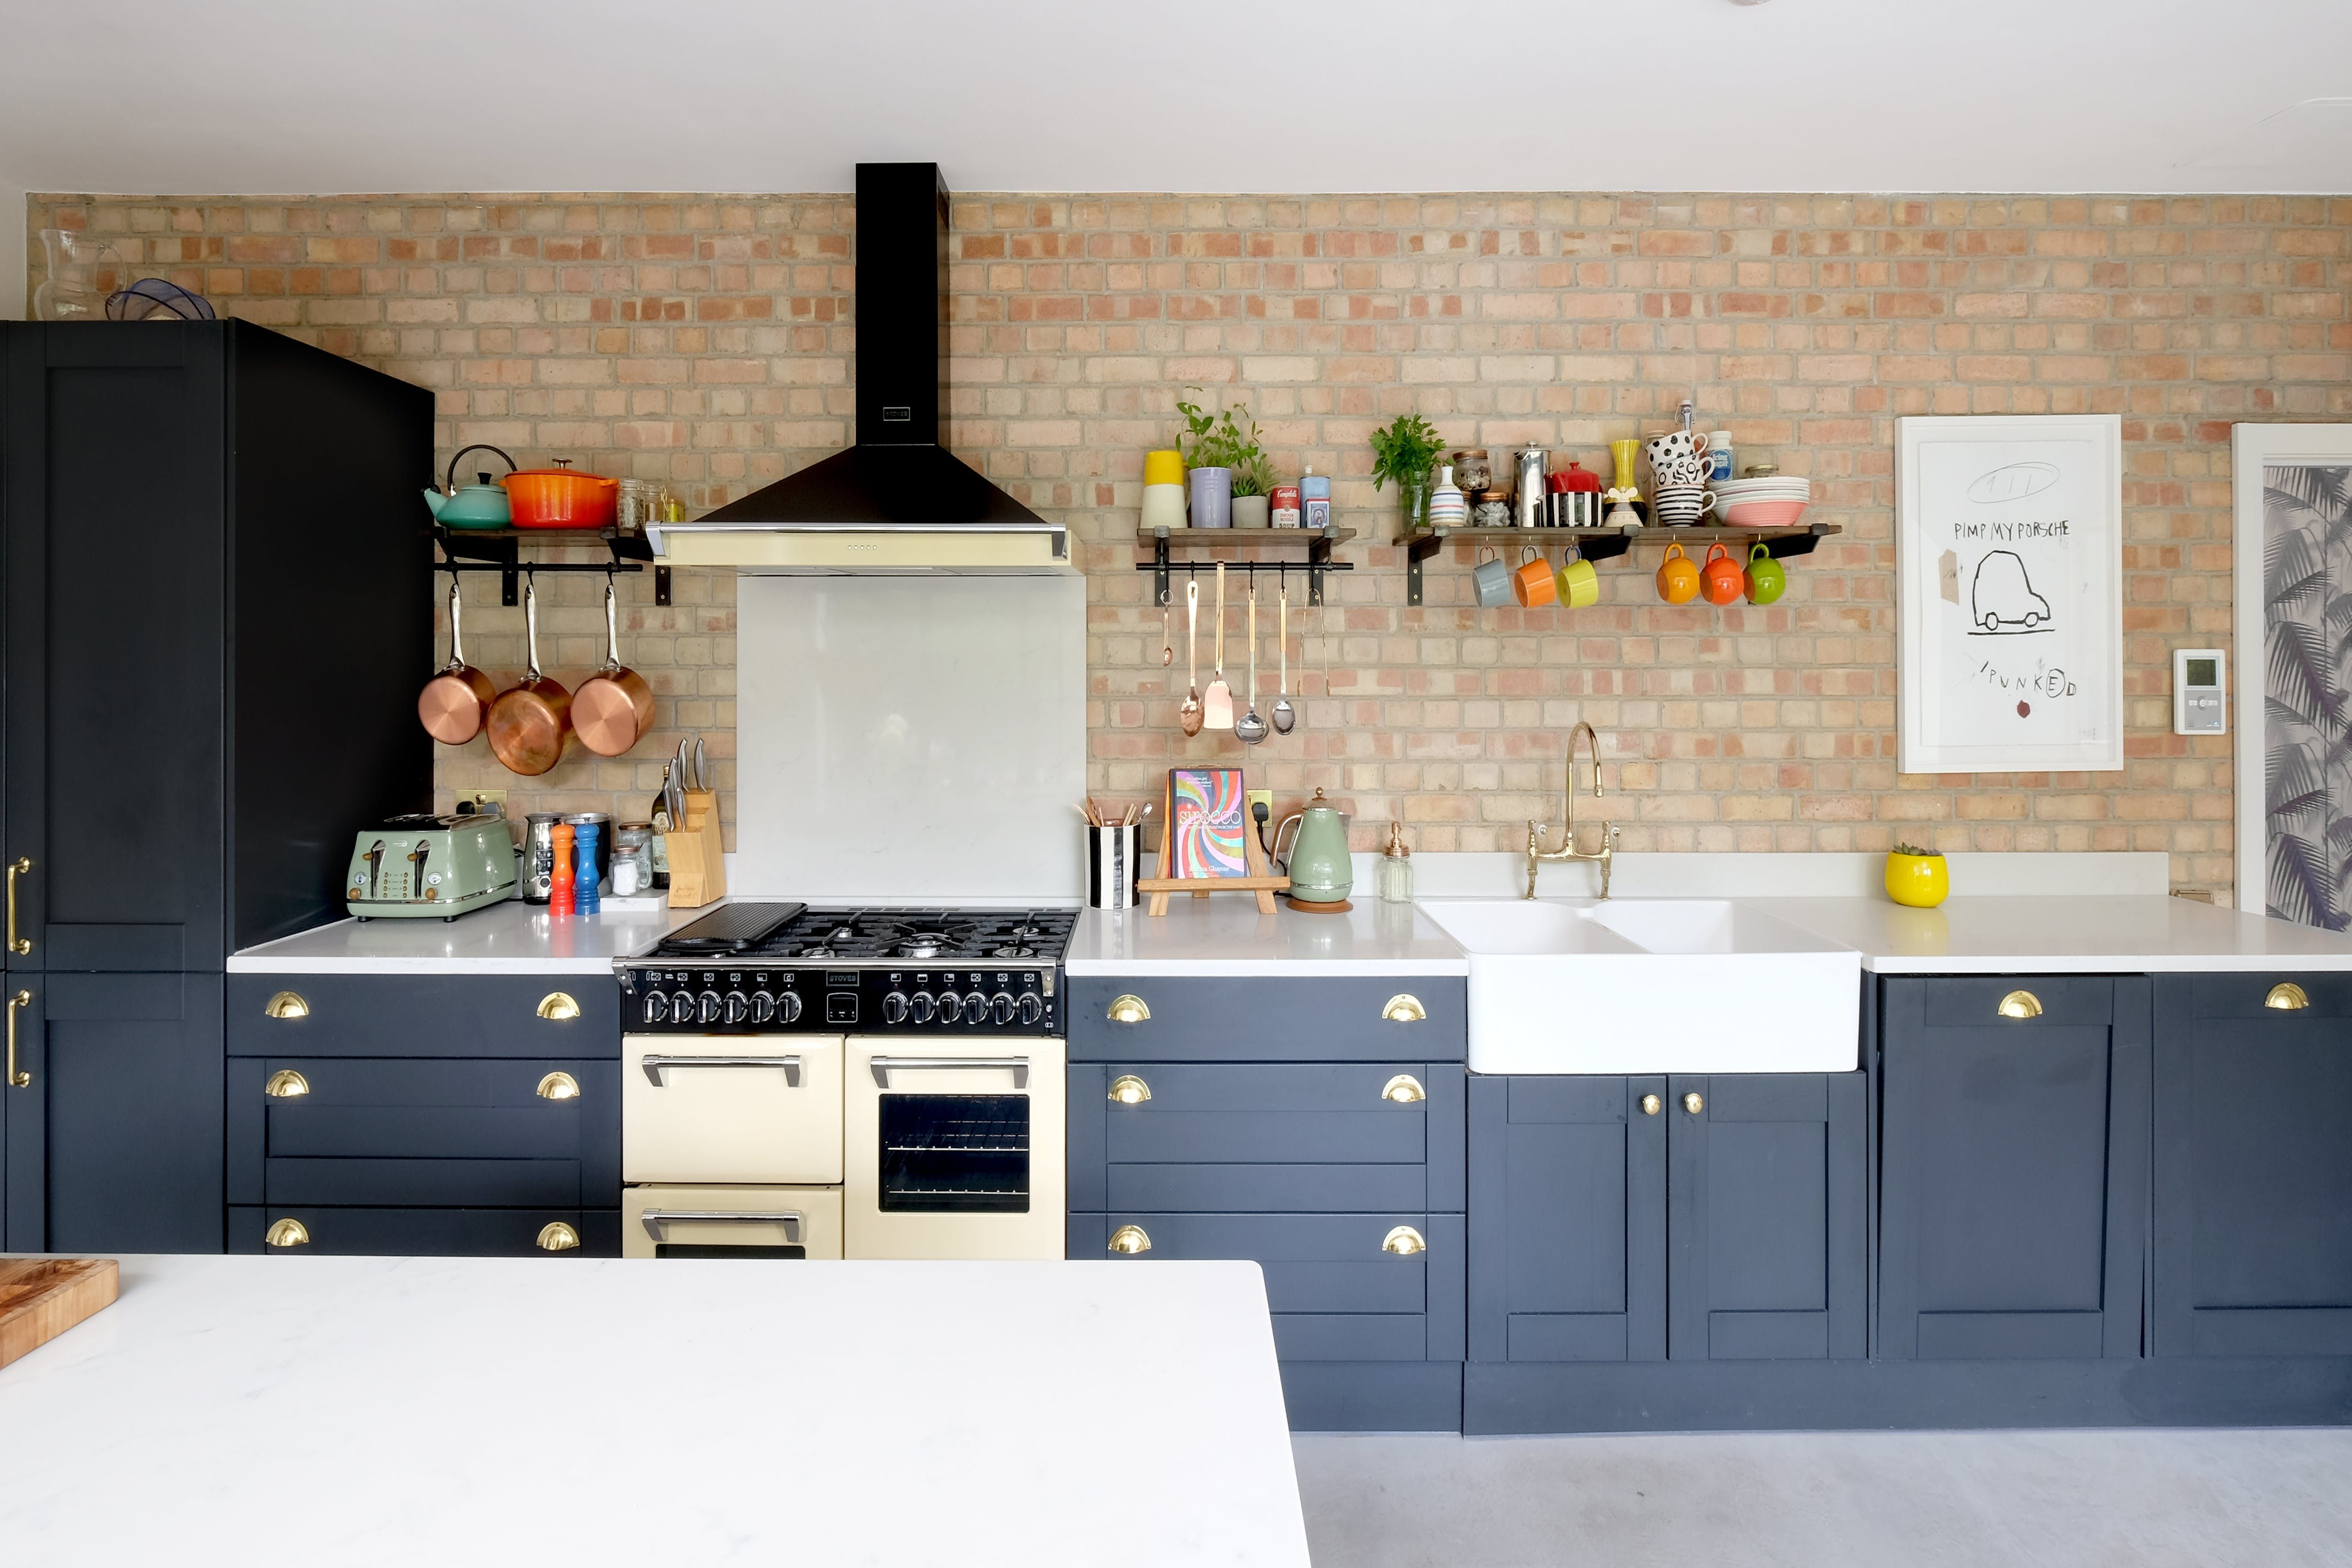 This Home Is Cool New York Loft Meets Chic London Flat Beautiful Kitchen Cabinets Painting Kitchen Cabinets New York Loft